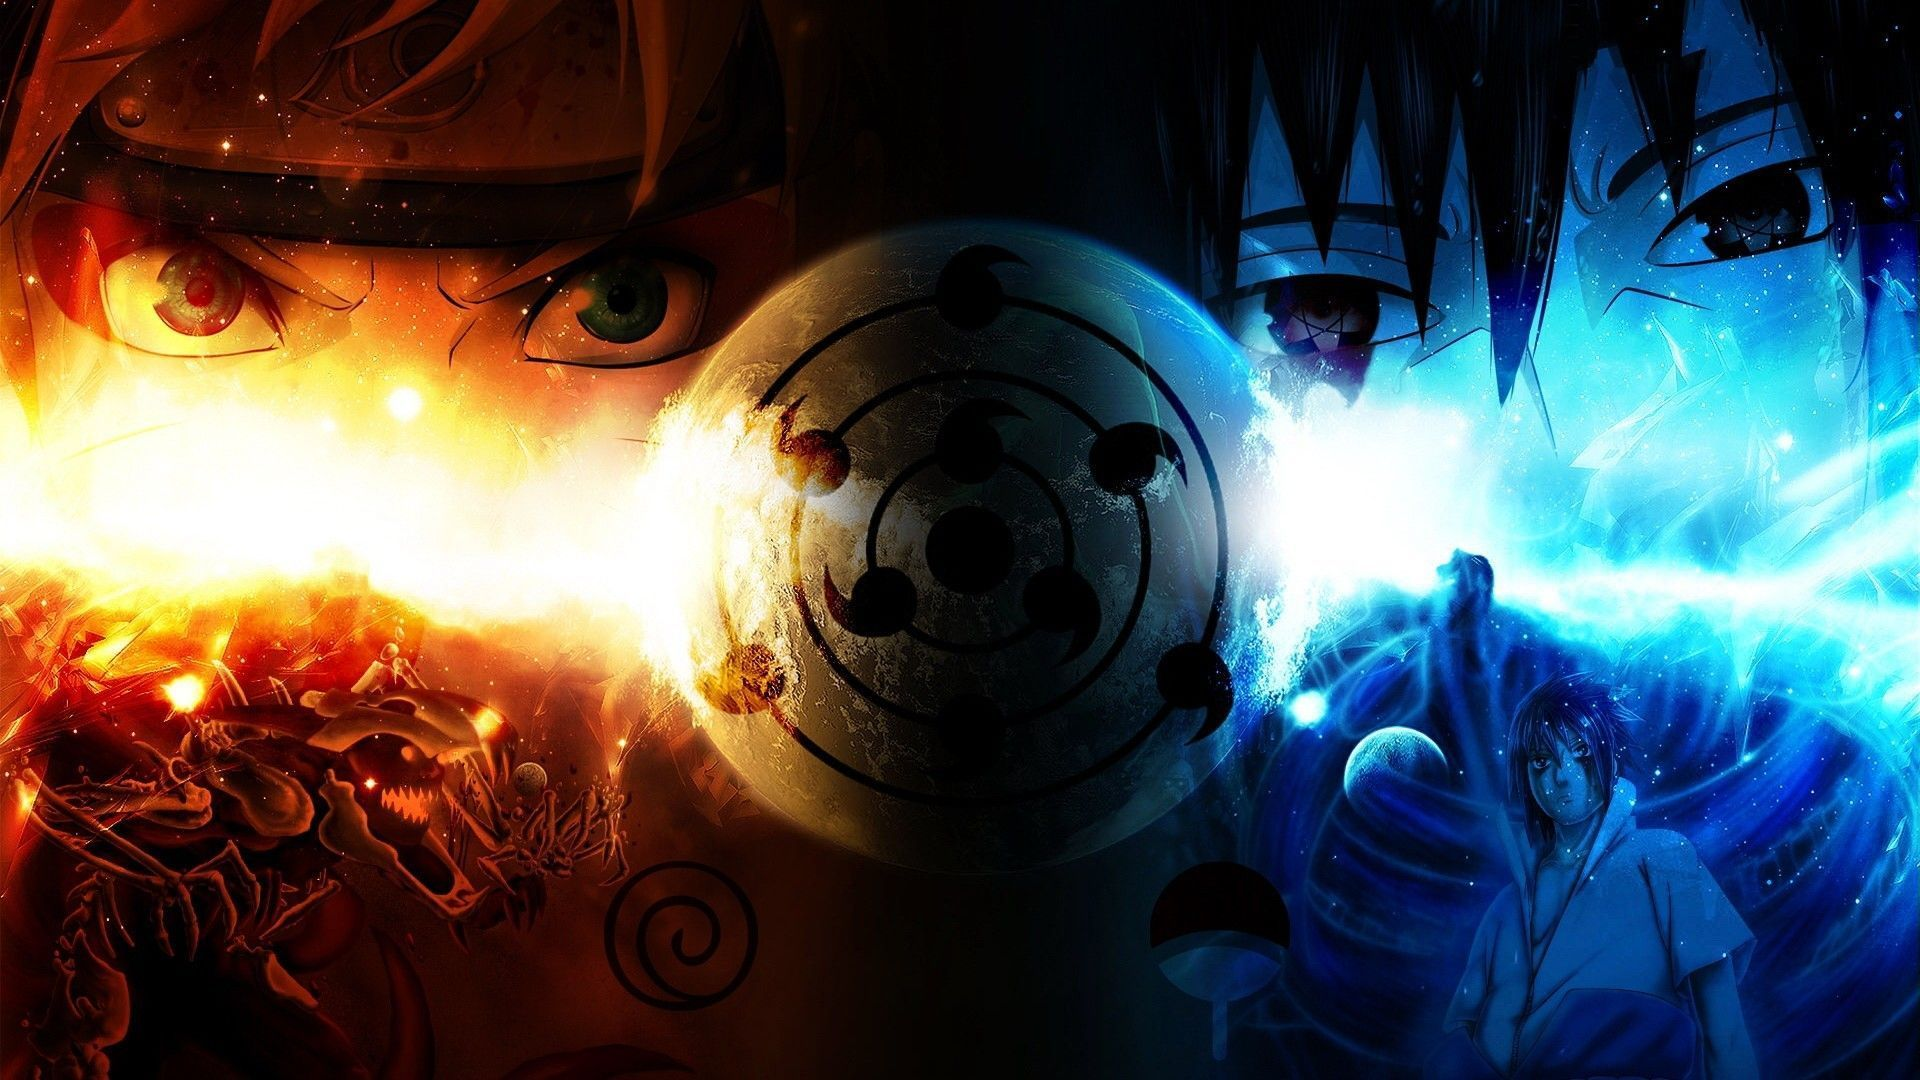 Cool Wallpaper Naruto Tablet - 1140de8fc9f24a00e598d1cb6f690251  2018.jpg